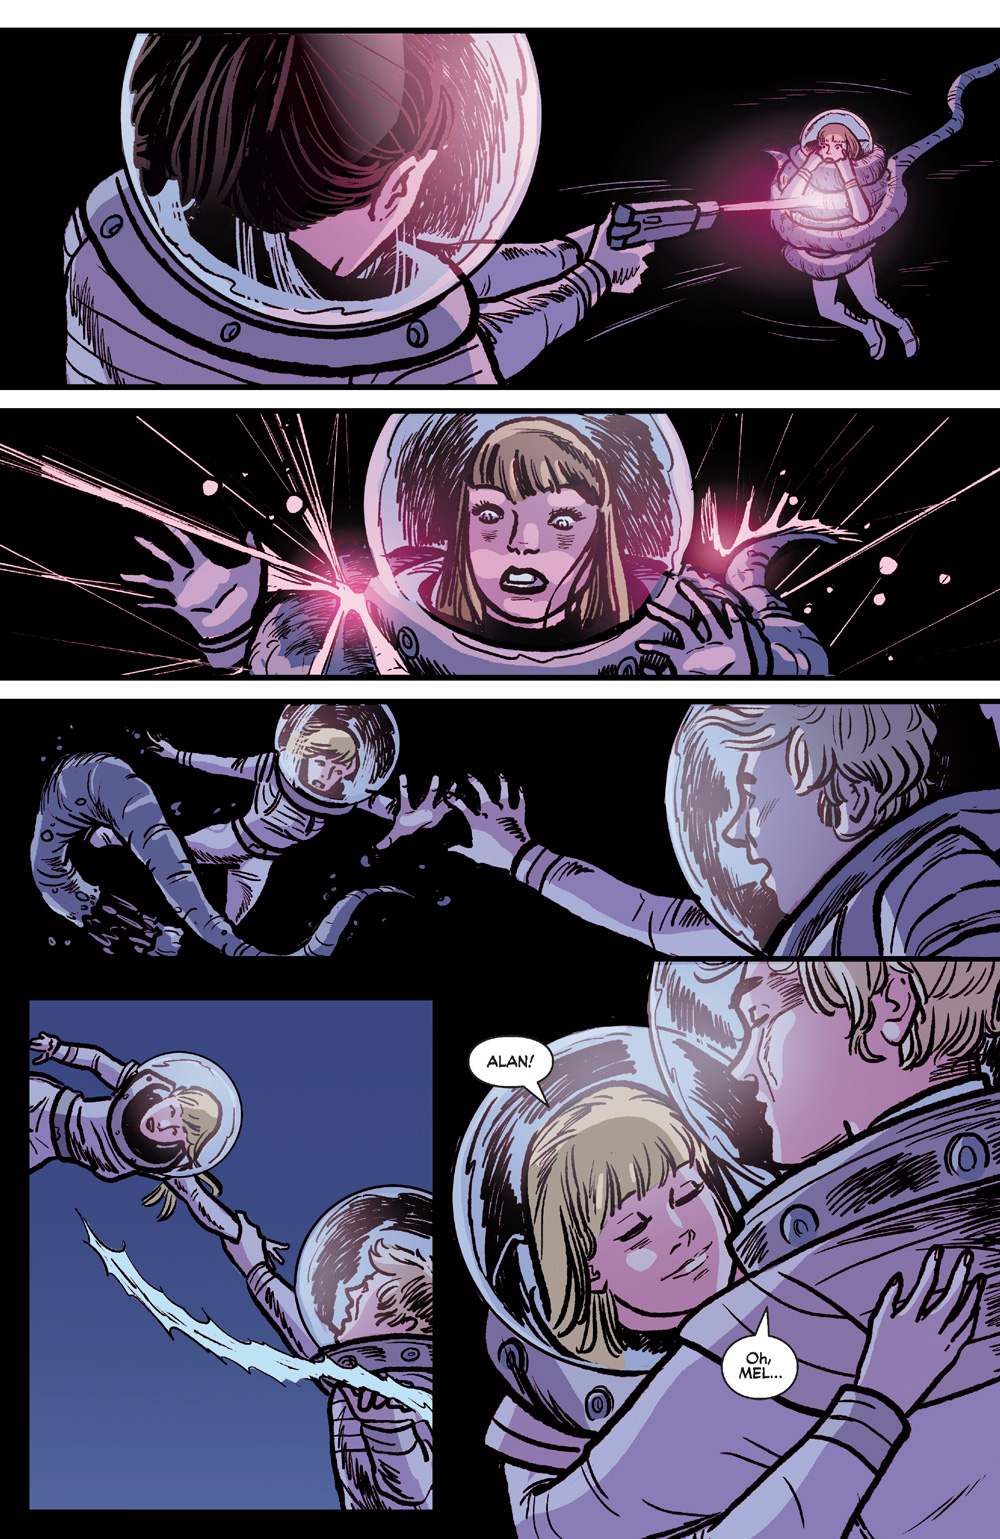 Melody being Saved by Alexandra and Alan in Josie and the Pussycats in Space #5.